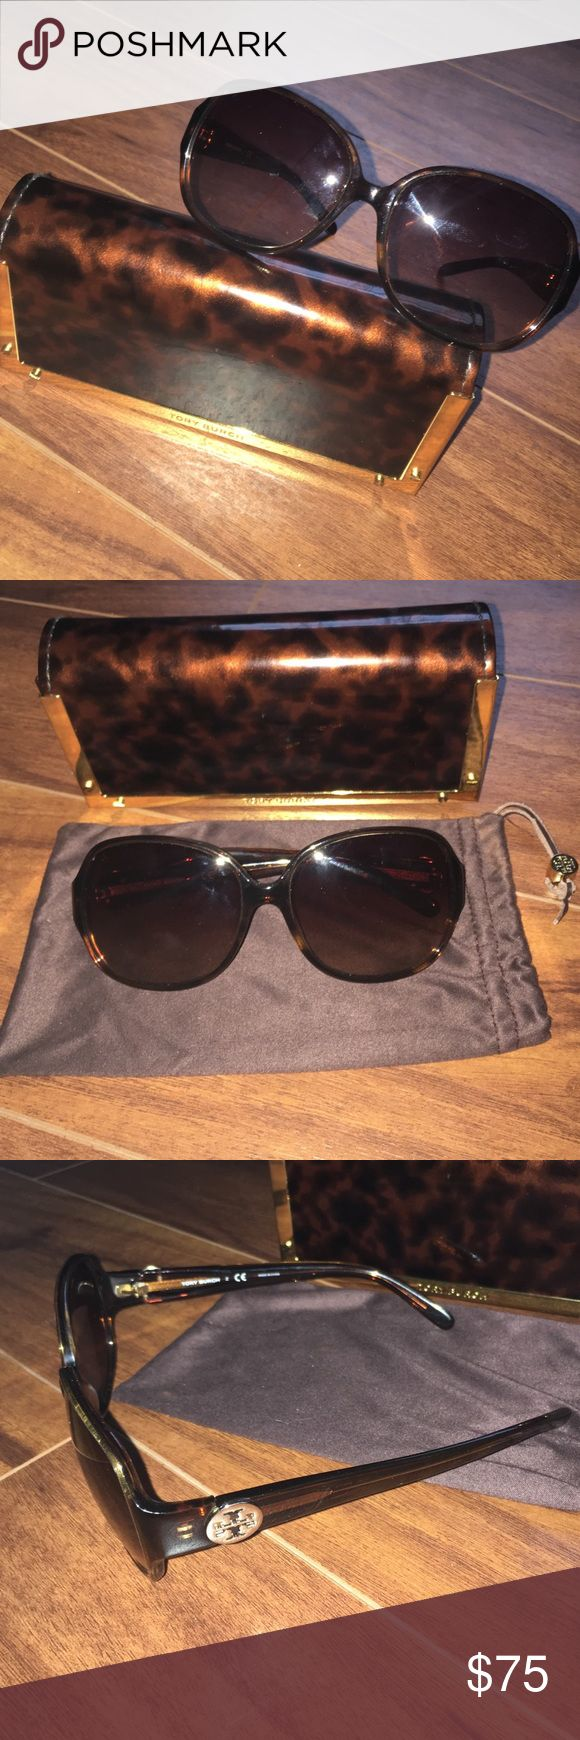 Tory Burch Sunglasses - Authentic, Great condition Authentic, very well taken care of Tory Burch tortoiseshell women's sunglasses! These are my favorite pair, however I just purchased a black pair and need to get rid of the brown. These are universally flattering and need a great home. I have used these about 5 times are they are in wonderful condition! Comes with TB case and sleeve. Tory Burch Accessories Sunglasses